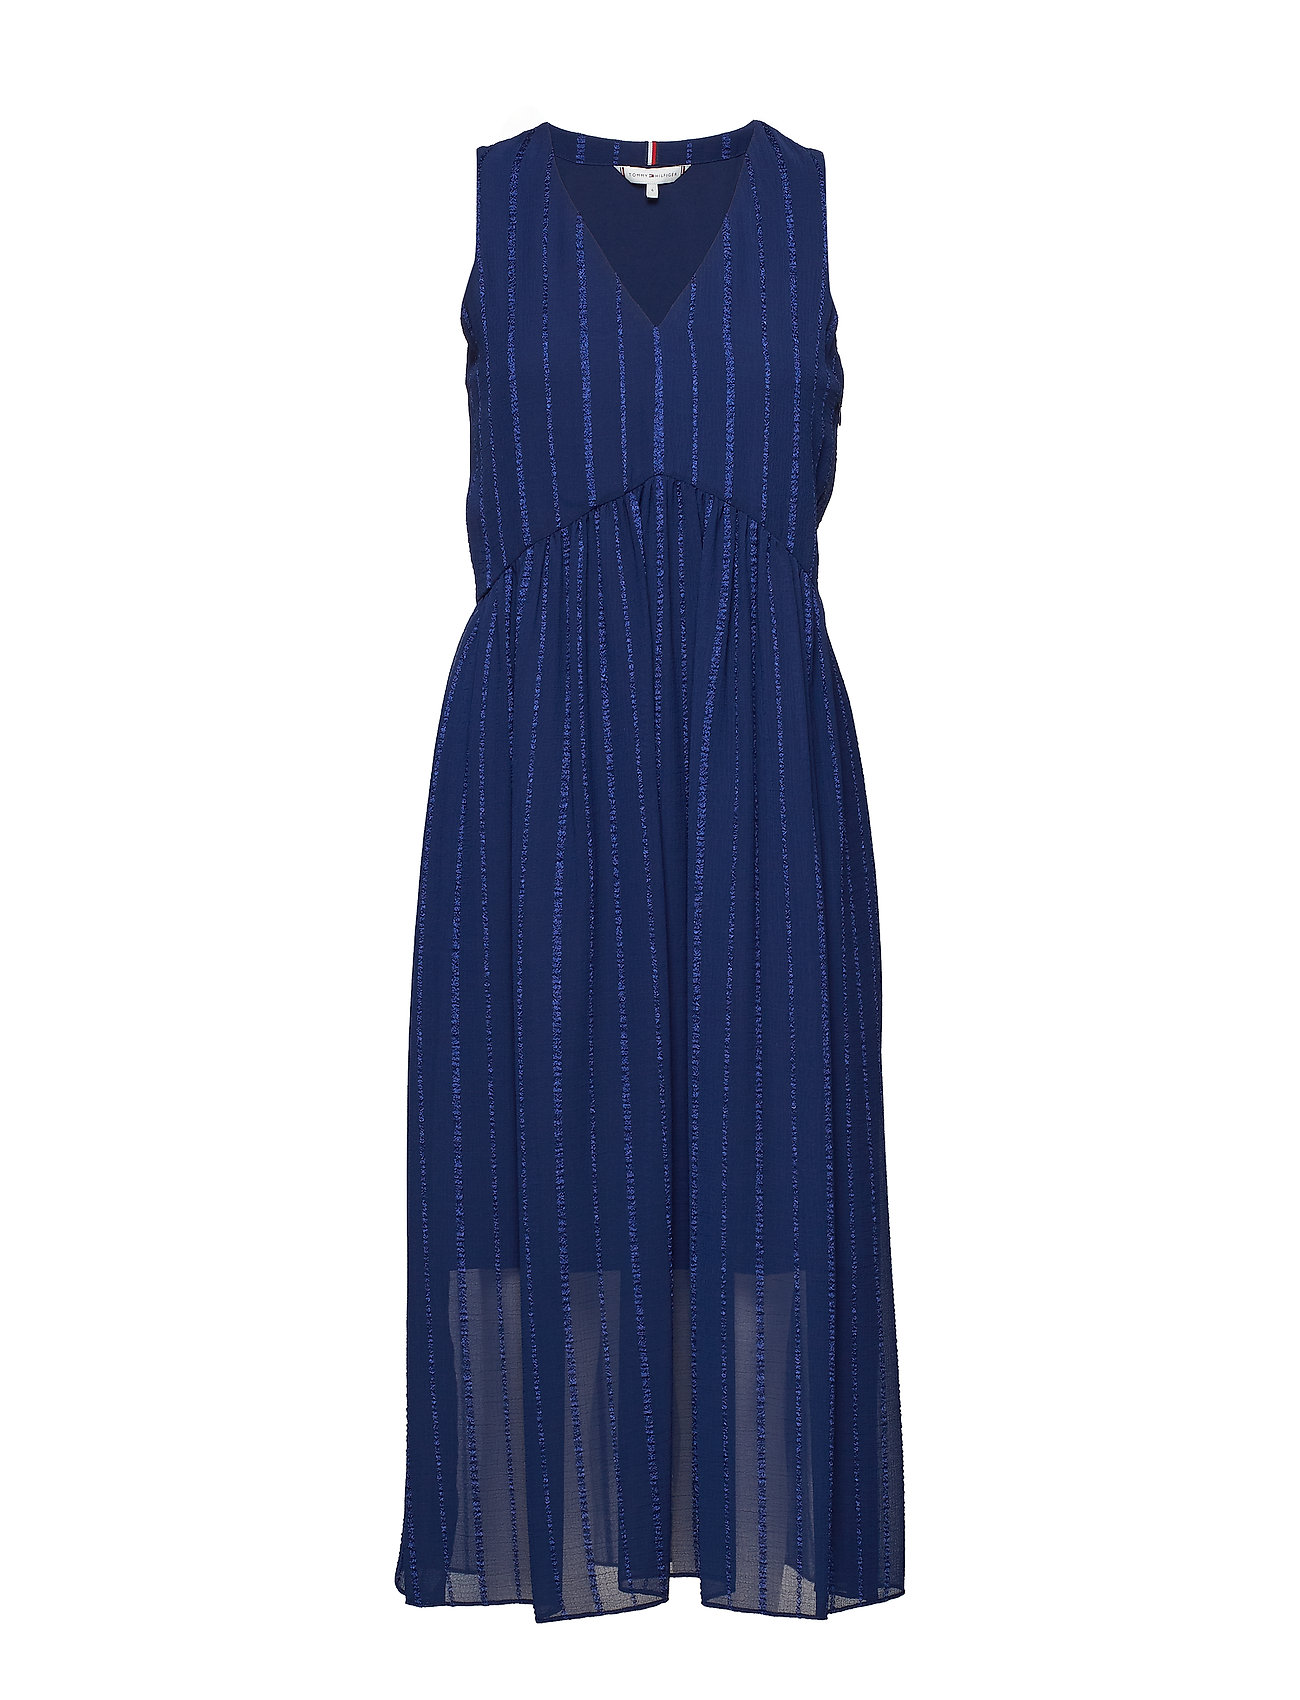 Tommy Hilfiger EVA DRESS NS - MEDIEVAL BLUE